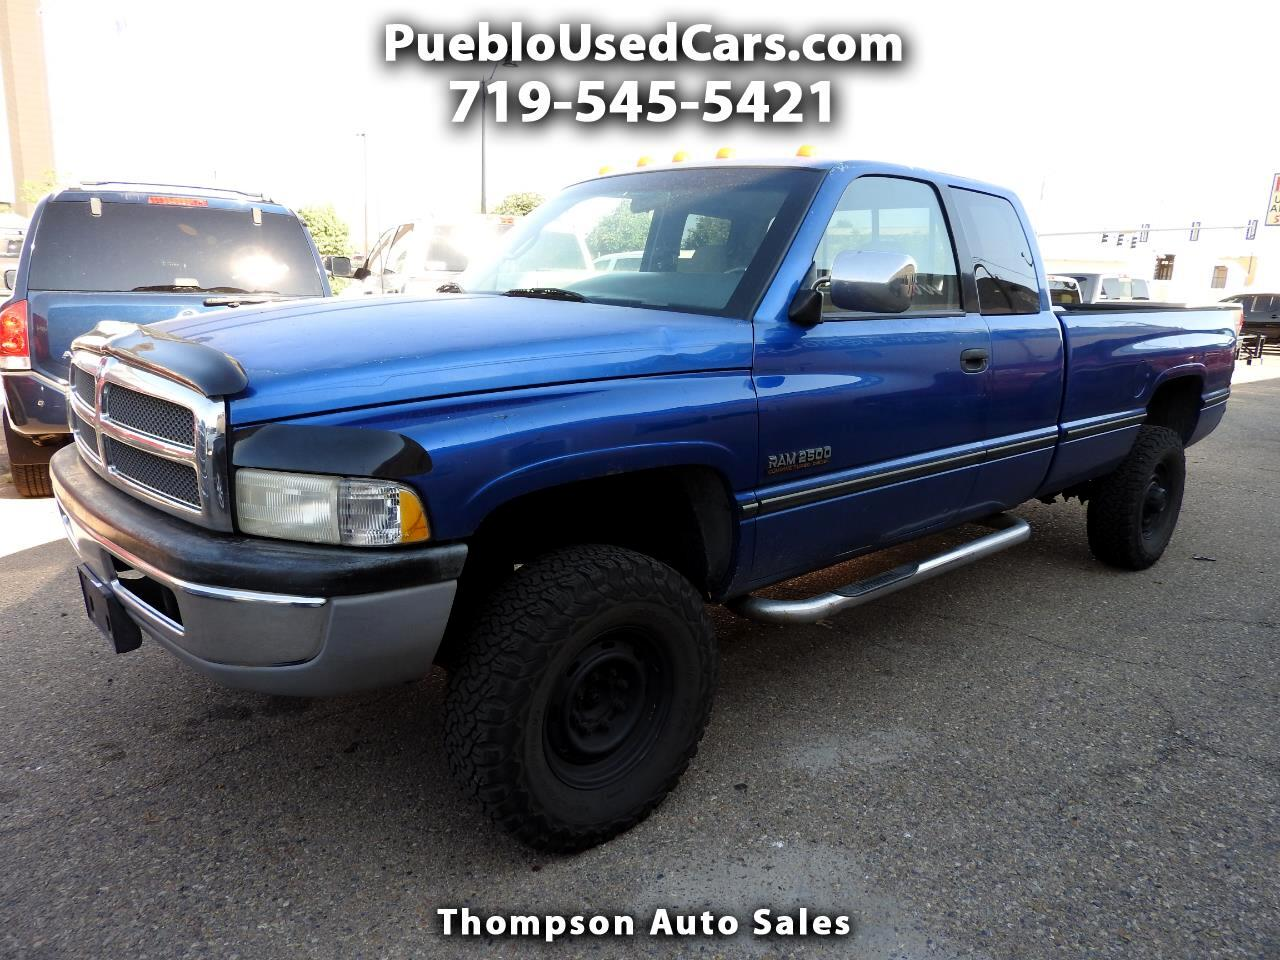 1997 Dodge Ram 2500 ST Club Cab 4WD 5.9L Cummins